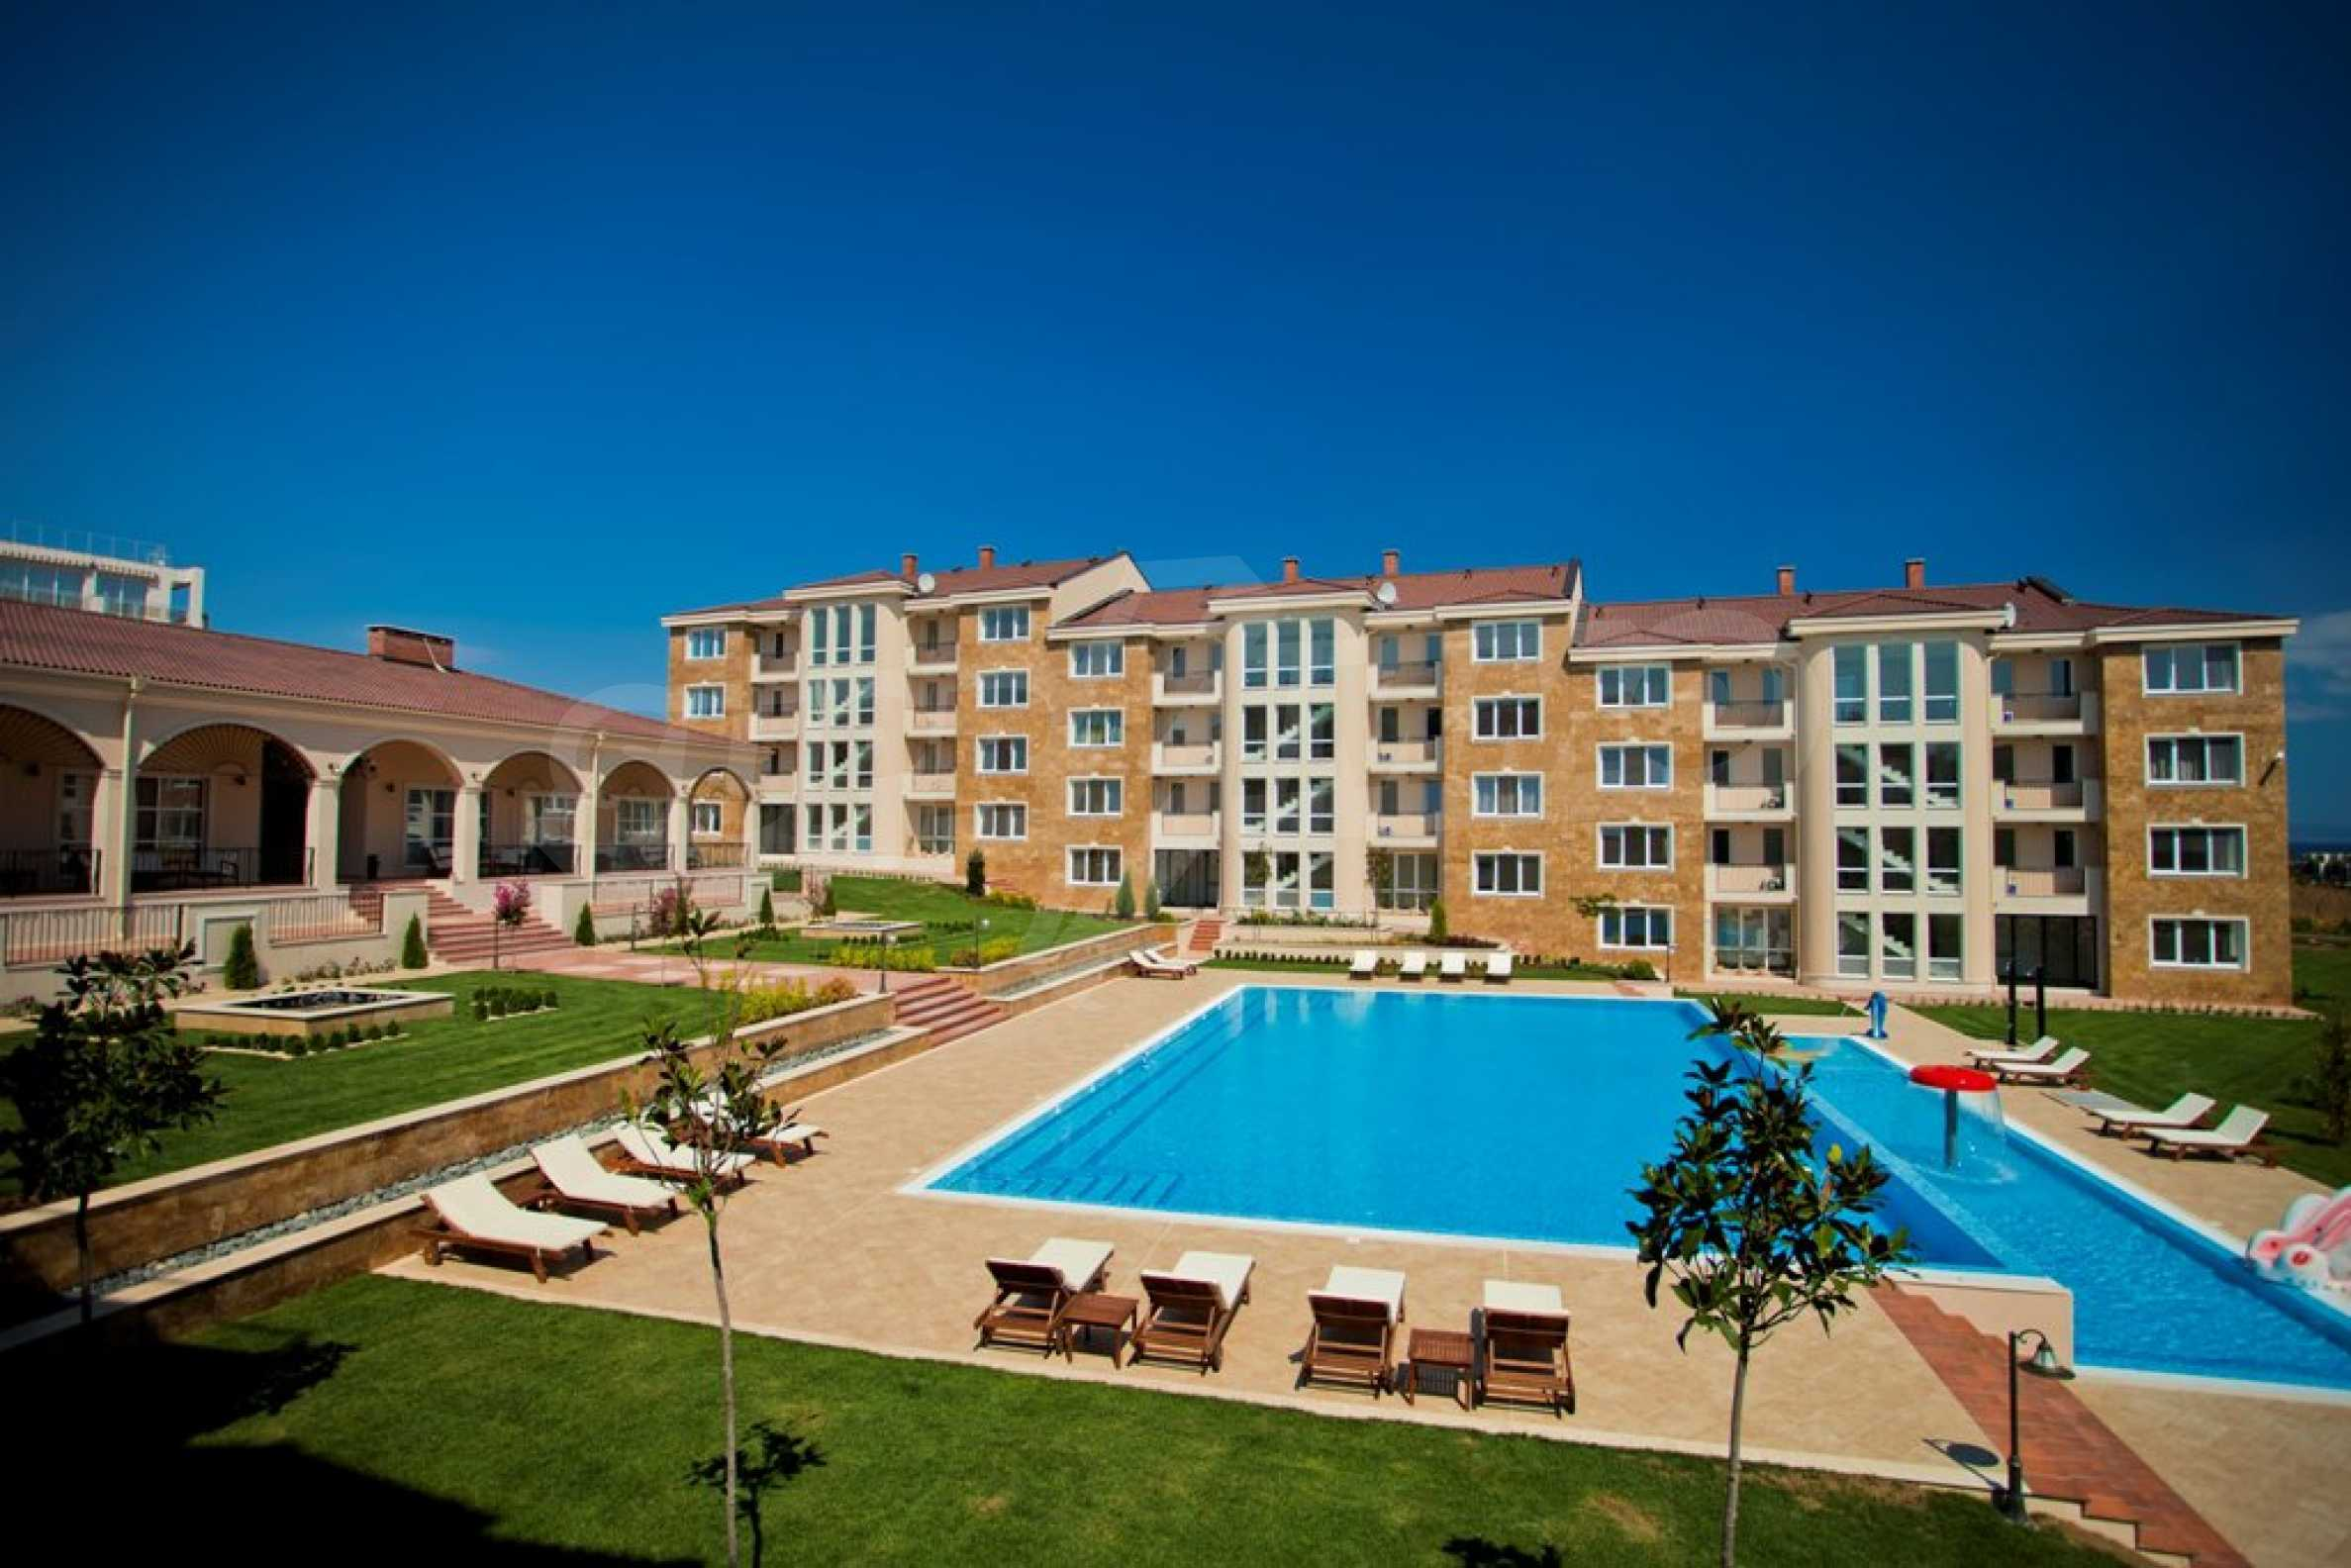 New apartment complex Atia resort in Chernomorets 3